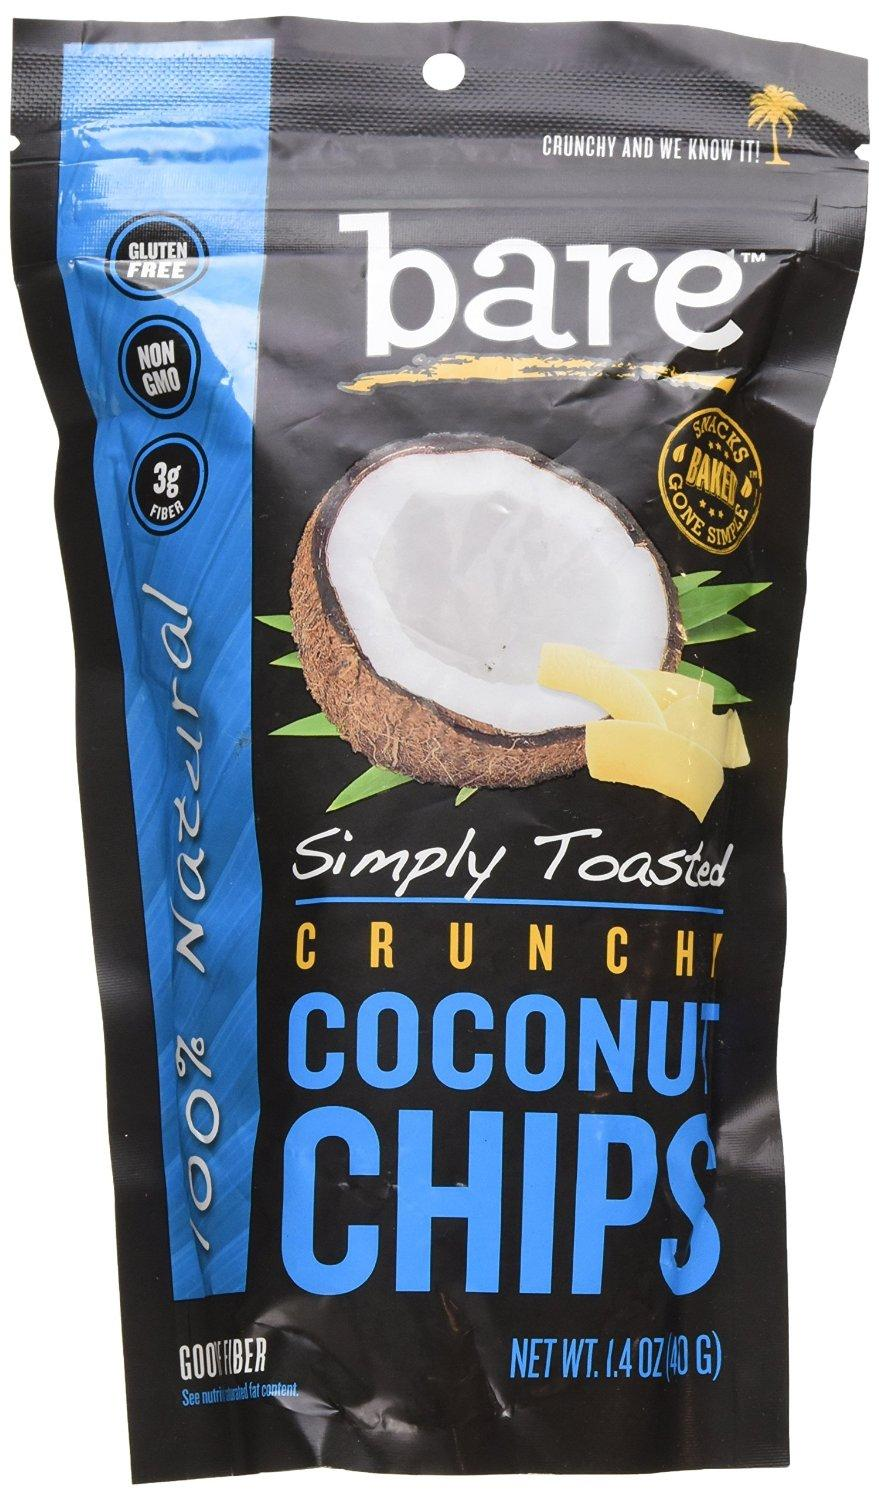 $1.75 Bare Simply Toasted Crunchy Coconut Chips